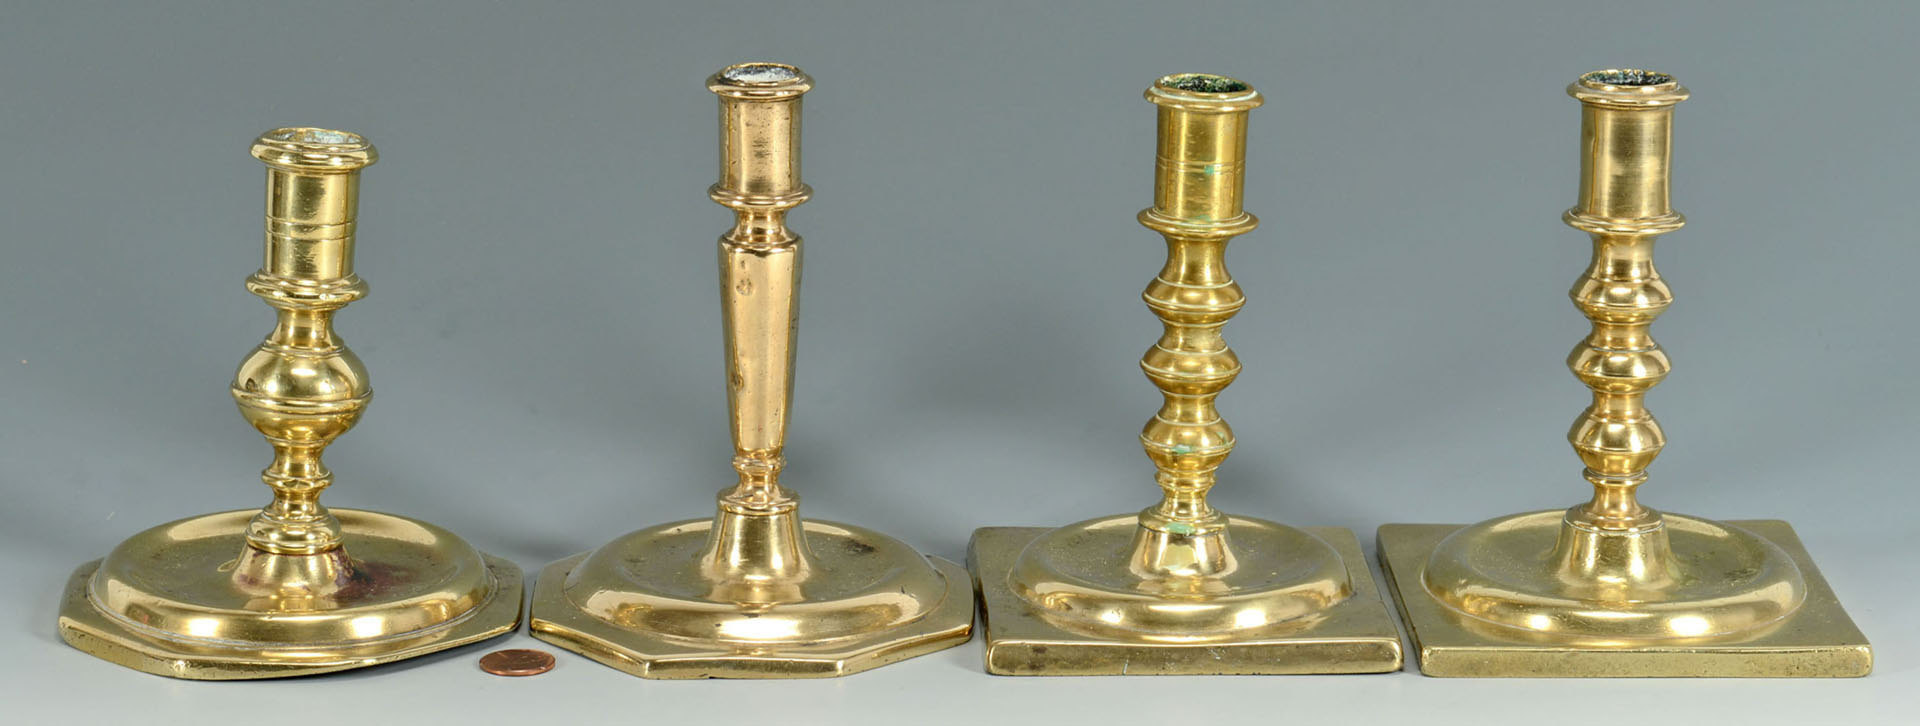 Lot 3088171: Four English Brass Candlesticks